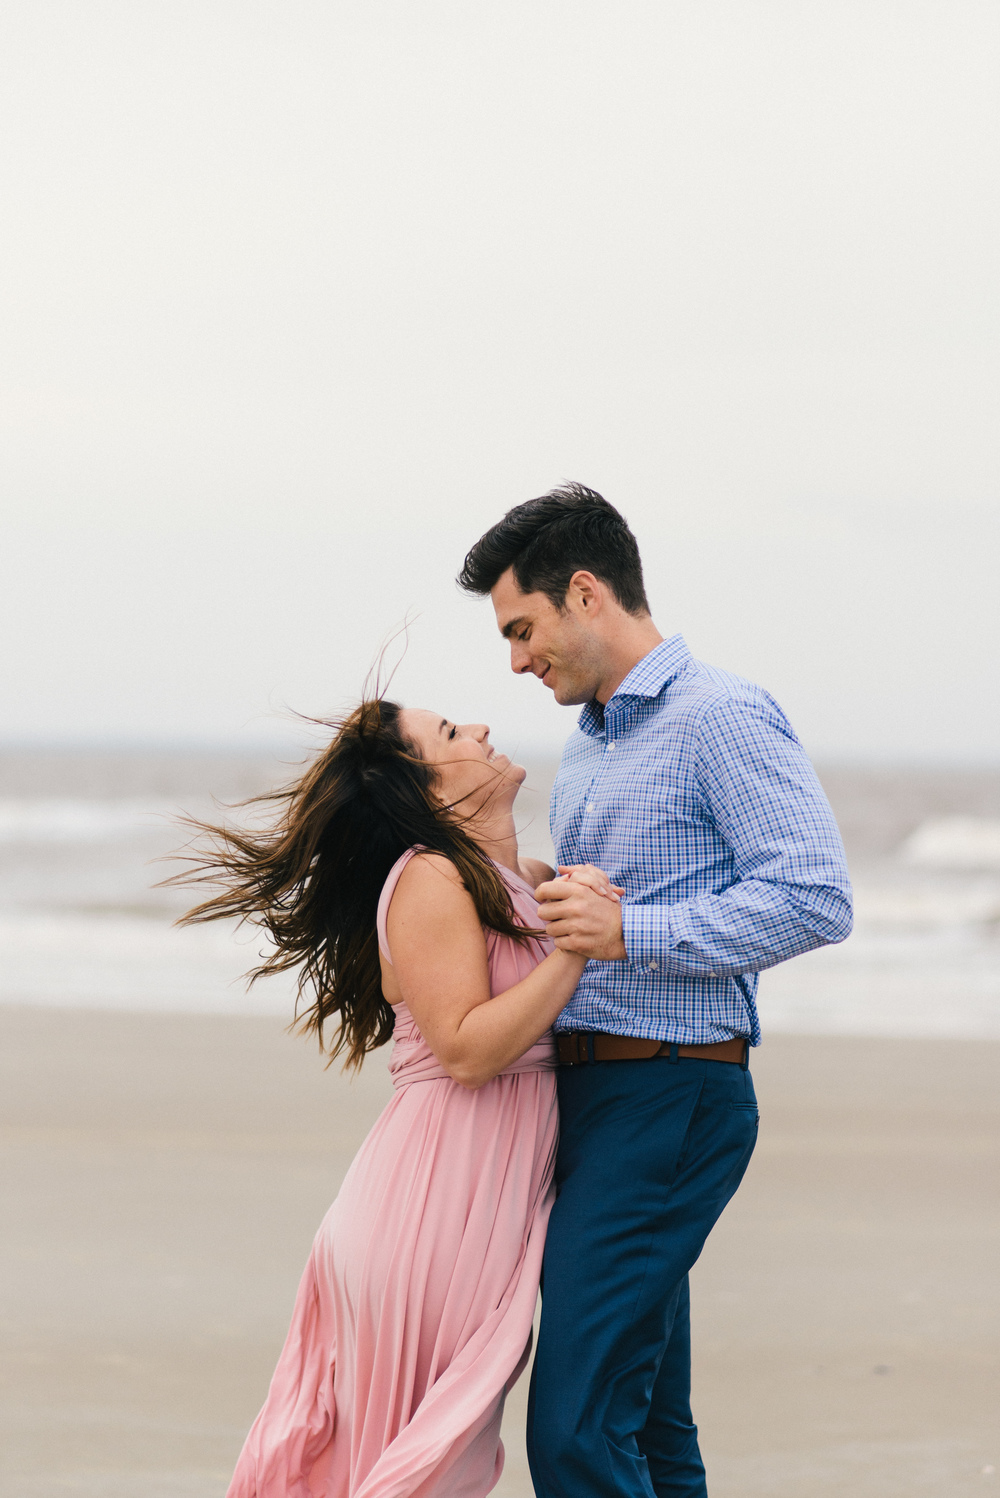 brownlyn-and-zach-tybee-island-engagement-session-april-2016-m-newsom-photography- (191 of 263).jpg